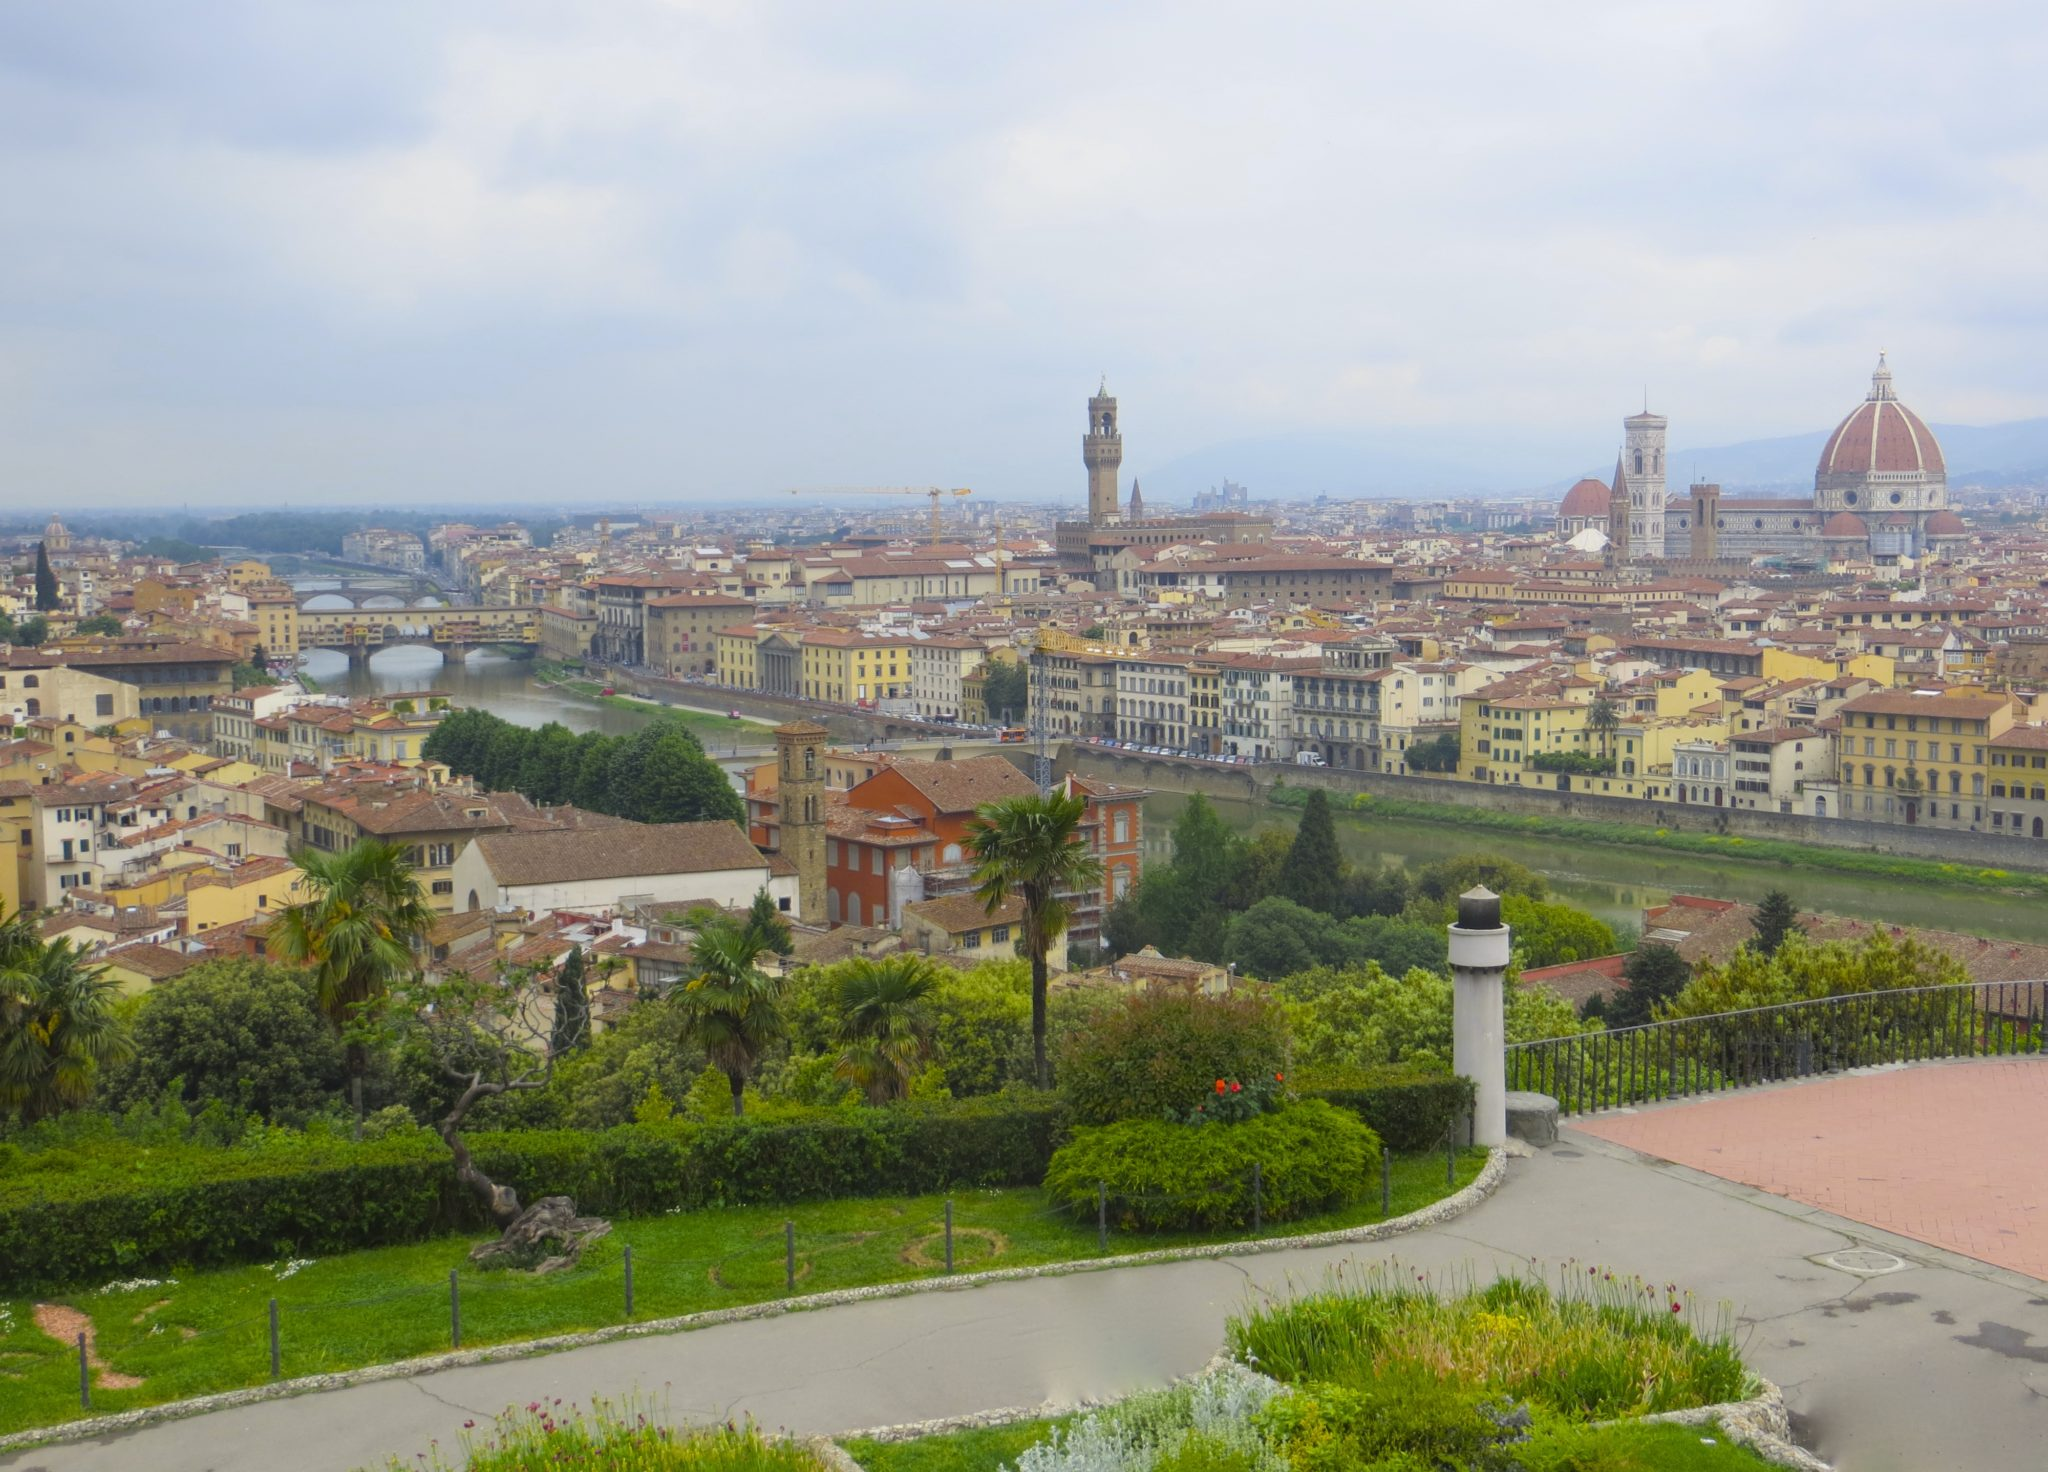 Our Visit to Florence